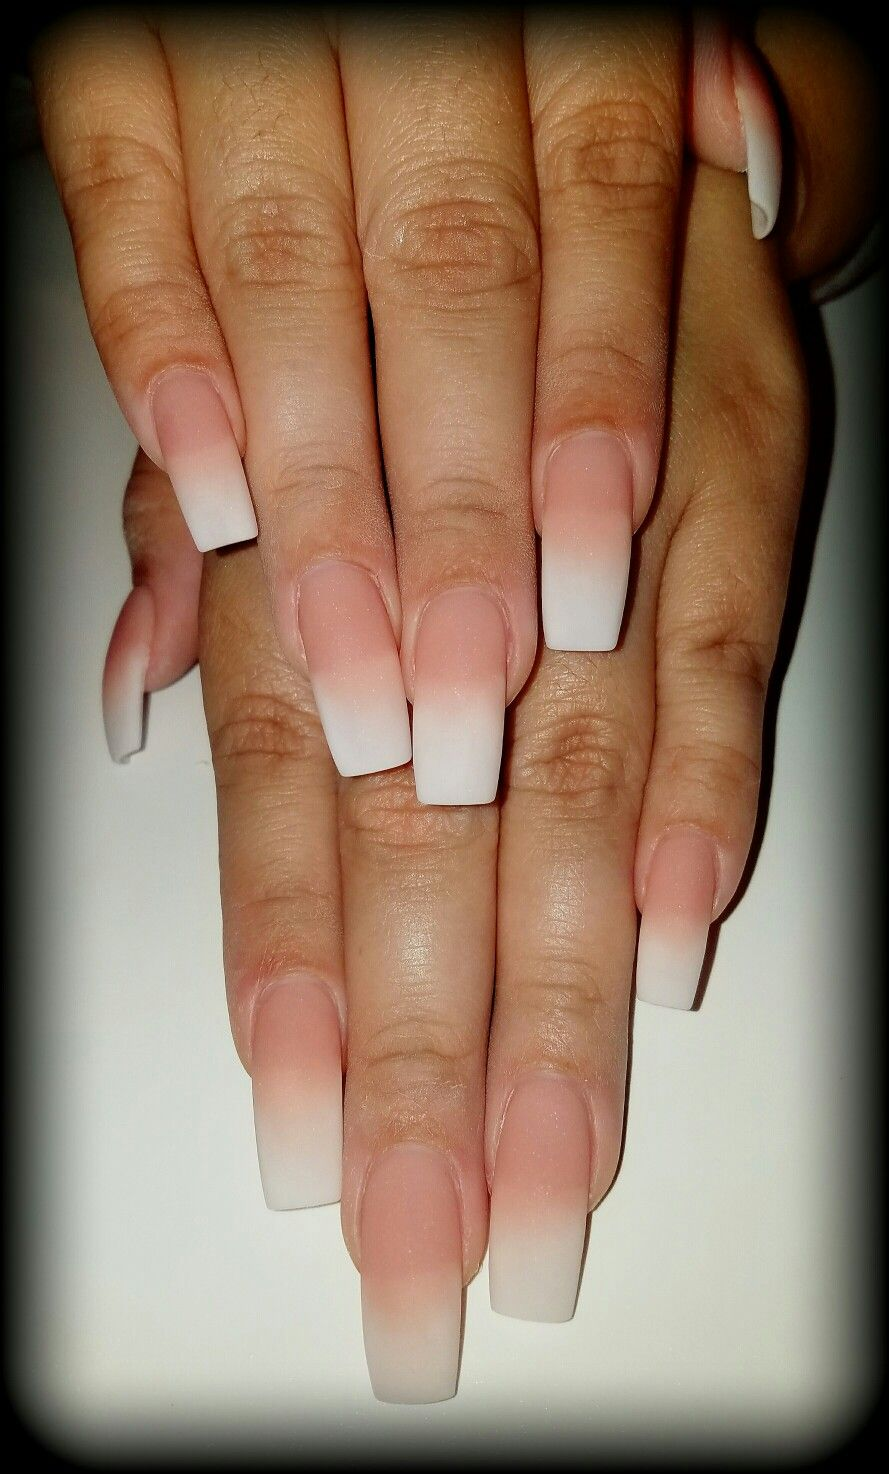 Matte French Ombr 233 Nails In 2019 Ambre Nails Trendy Nails Tapered Square Nails